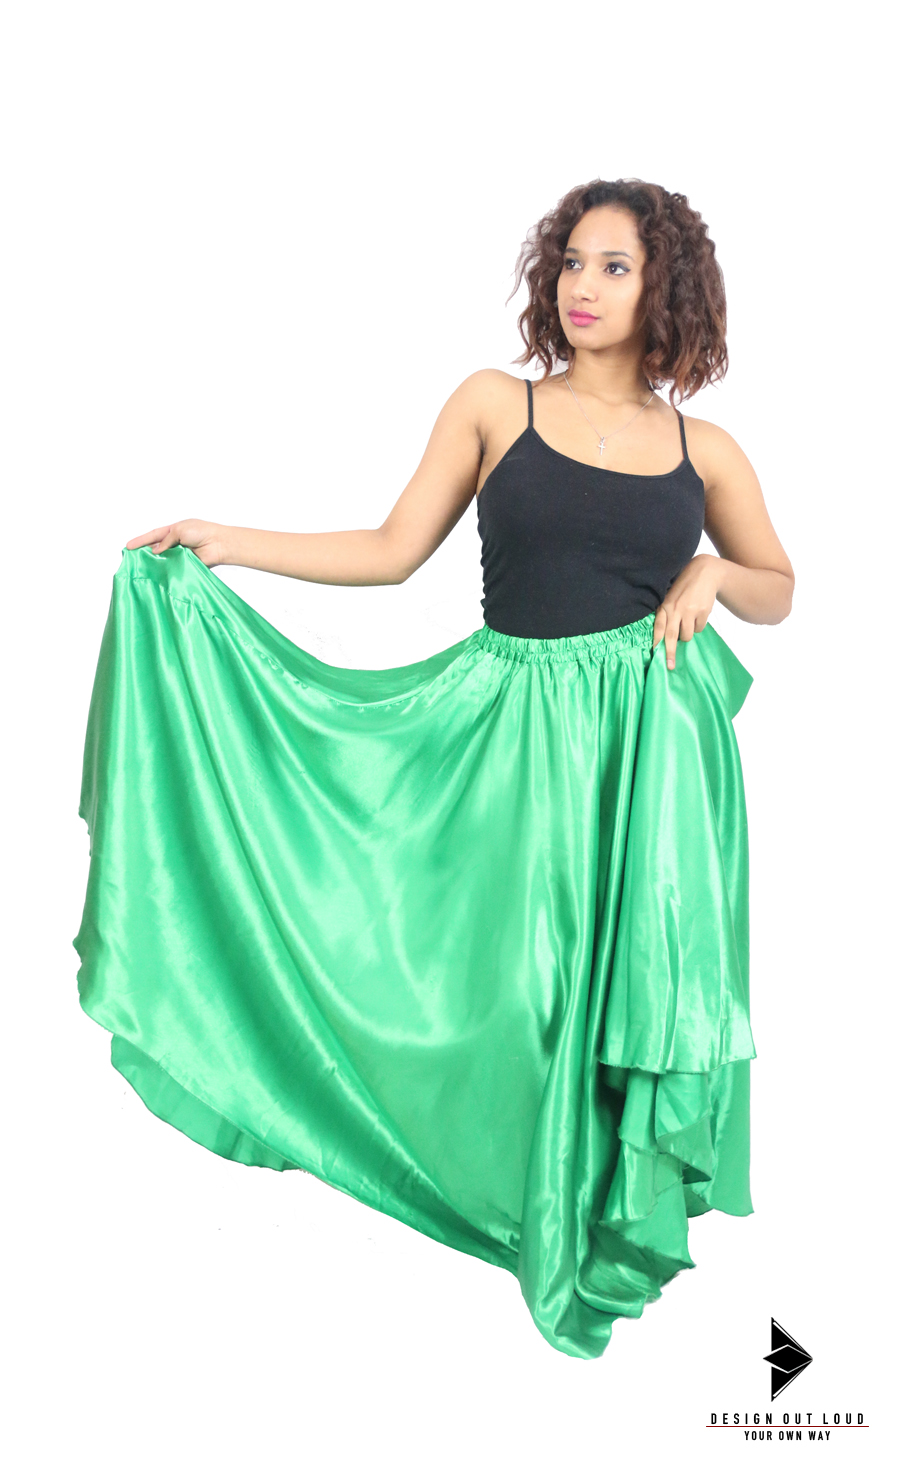 Green Satin Skirt.jpg